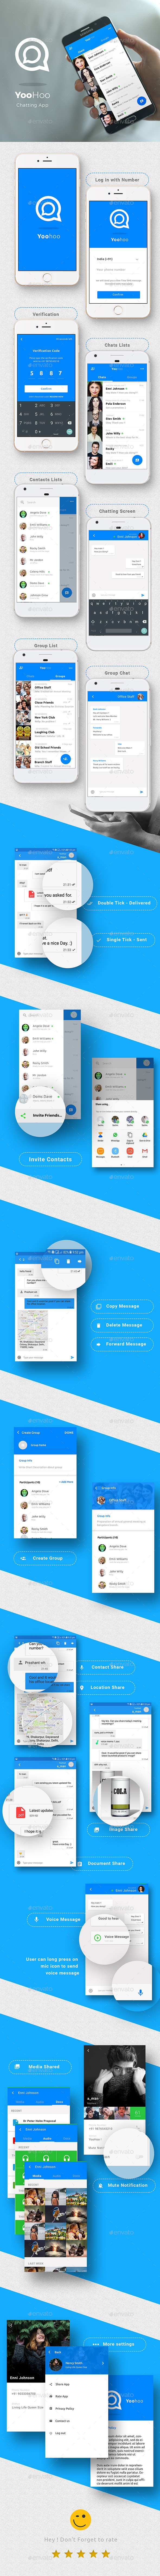 iOS+Android Chatting App UI Set- Modern Design - User Interfaces Web Elements